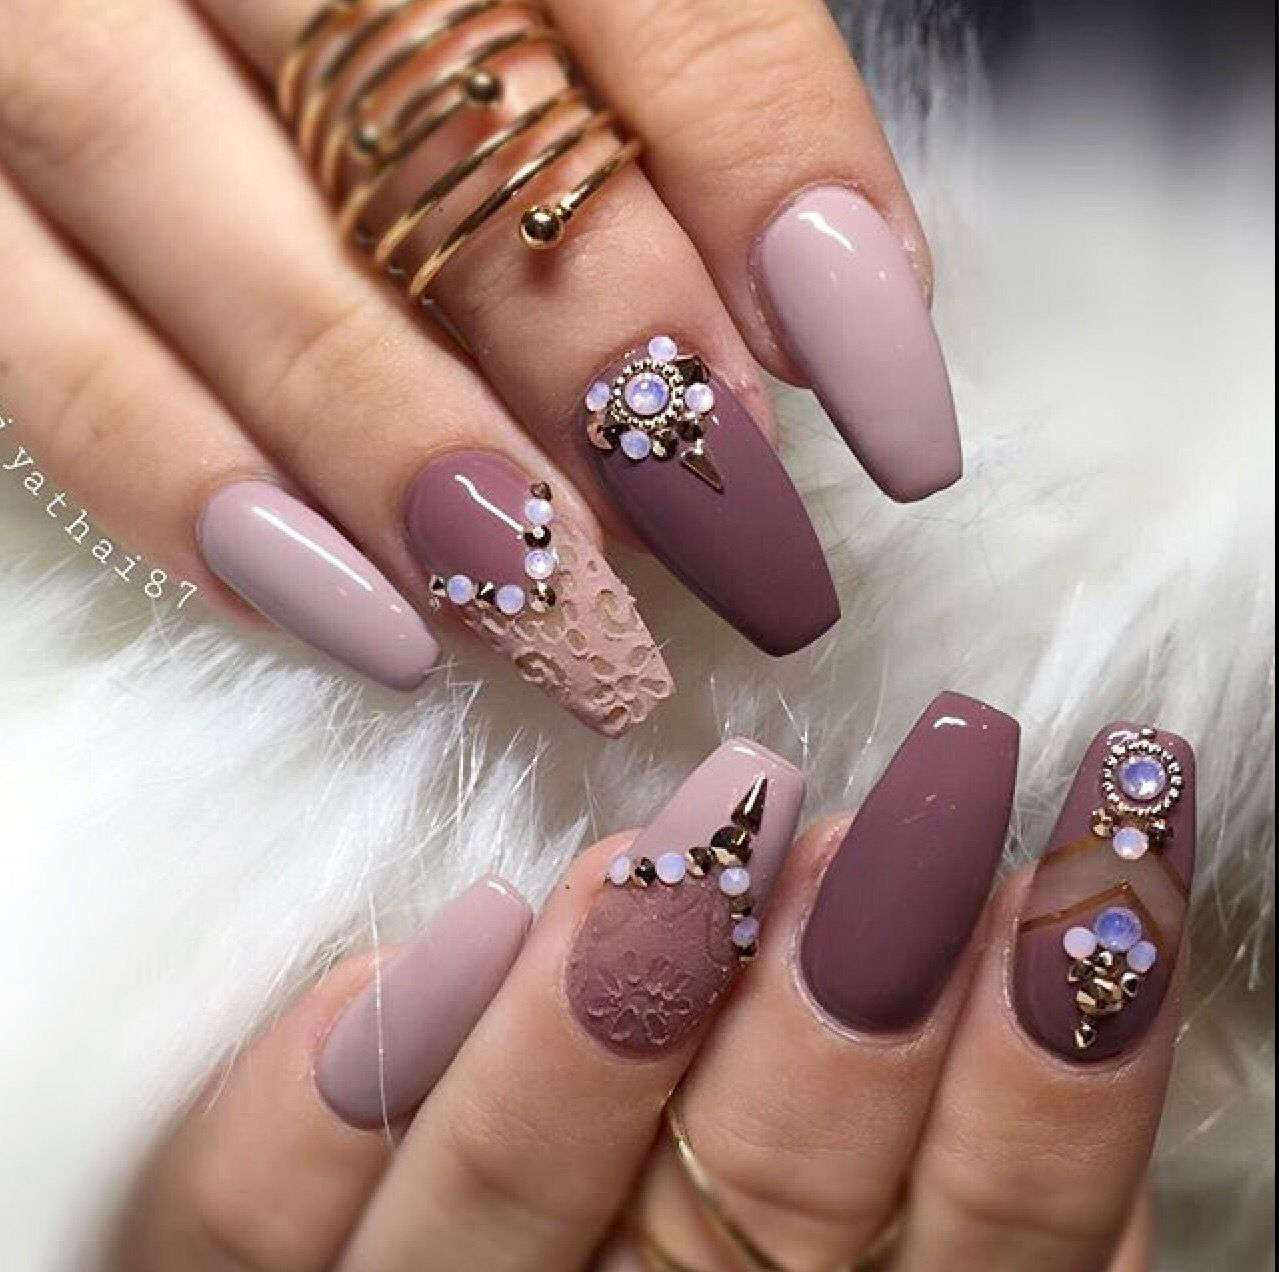 Pin by The Infamous Marra on Claws for her Paws | Pinterest | Nail ...